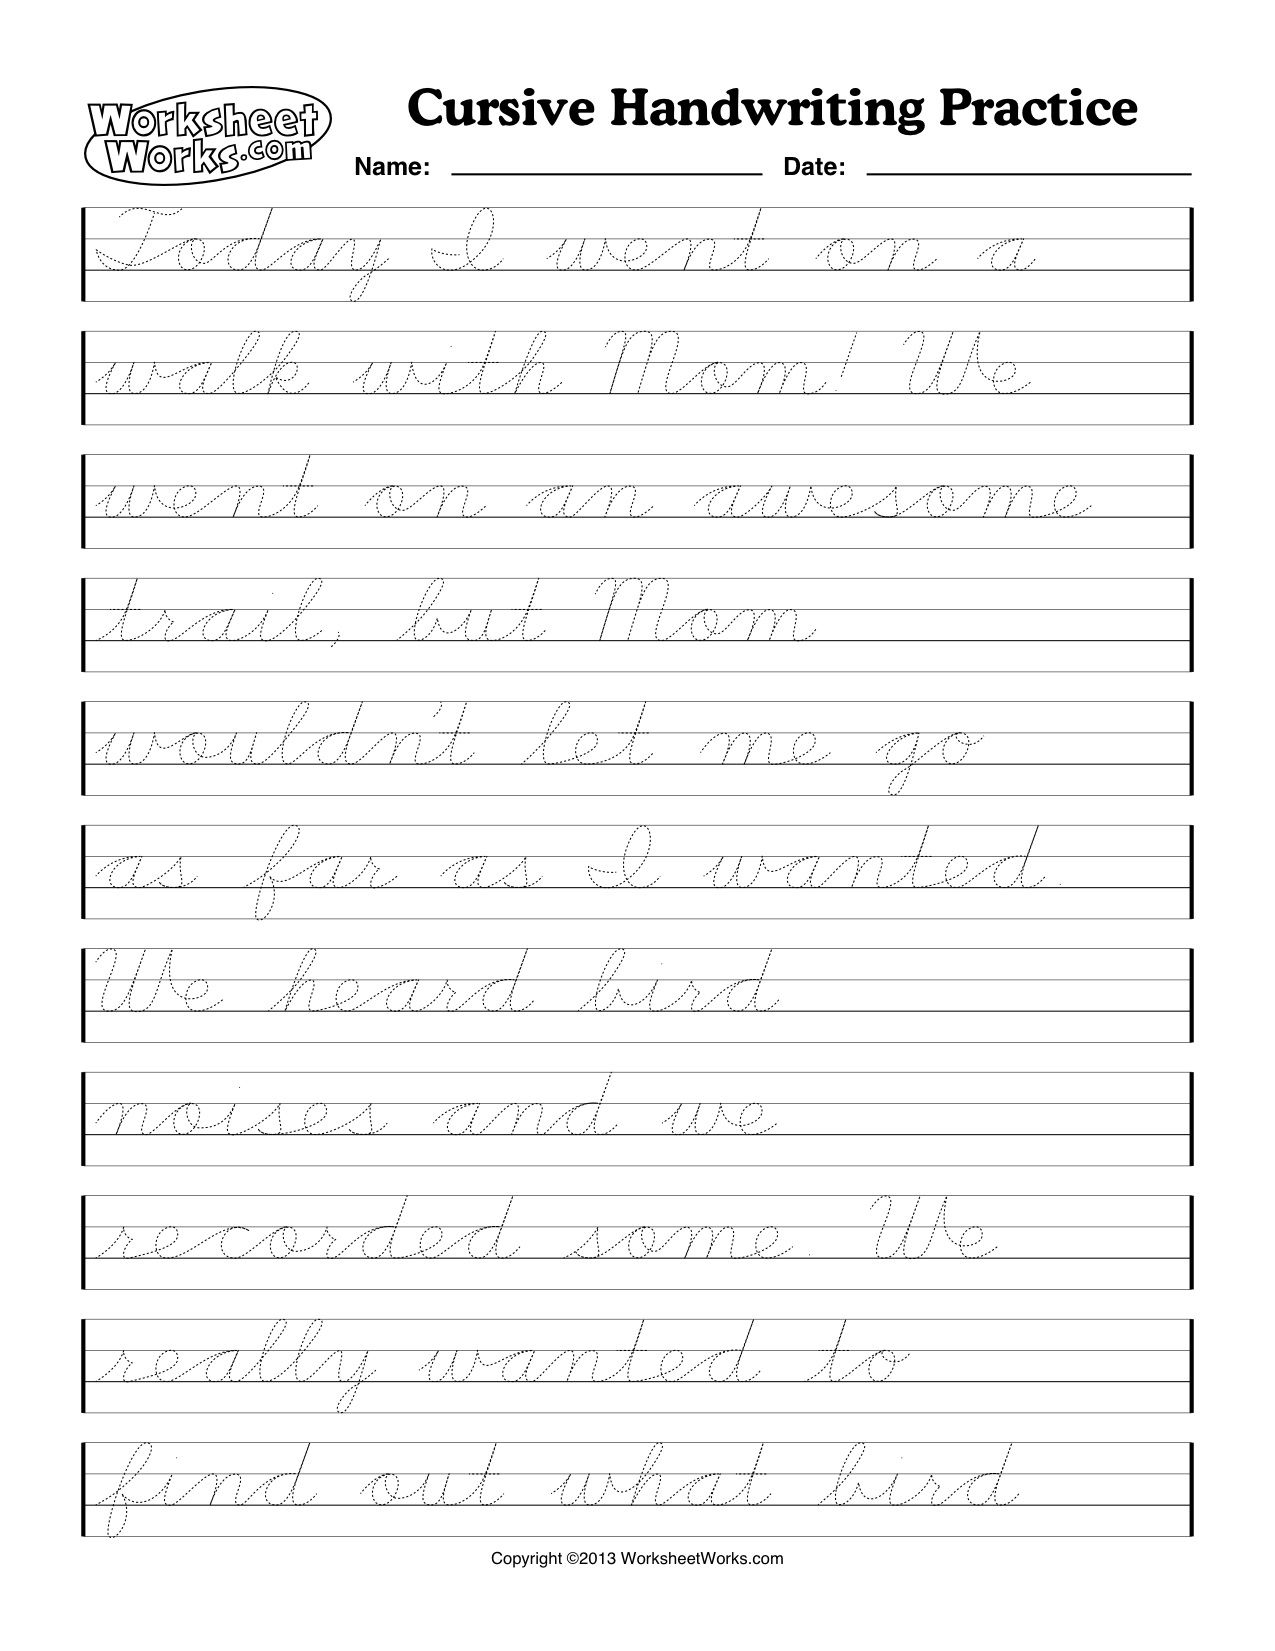 Printable Cursive Writing Paper Koran.sticken.co | Printable Cursive Writing Worksheets